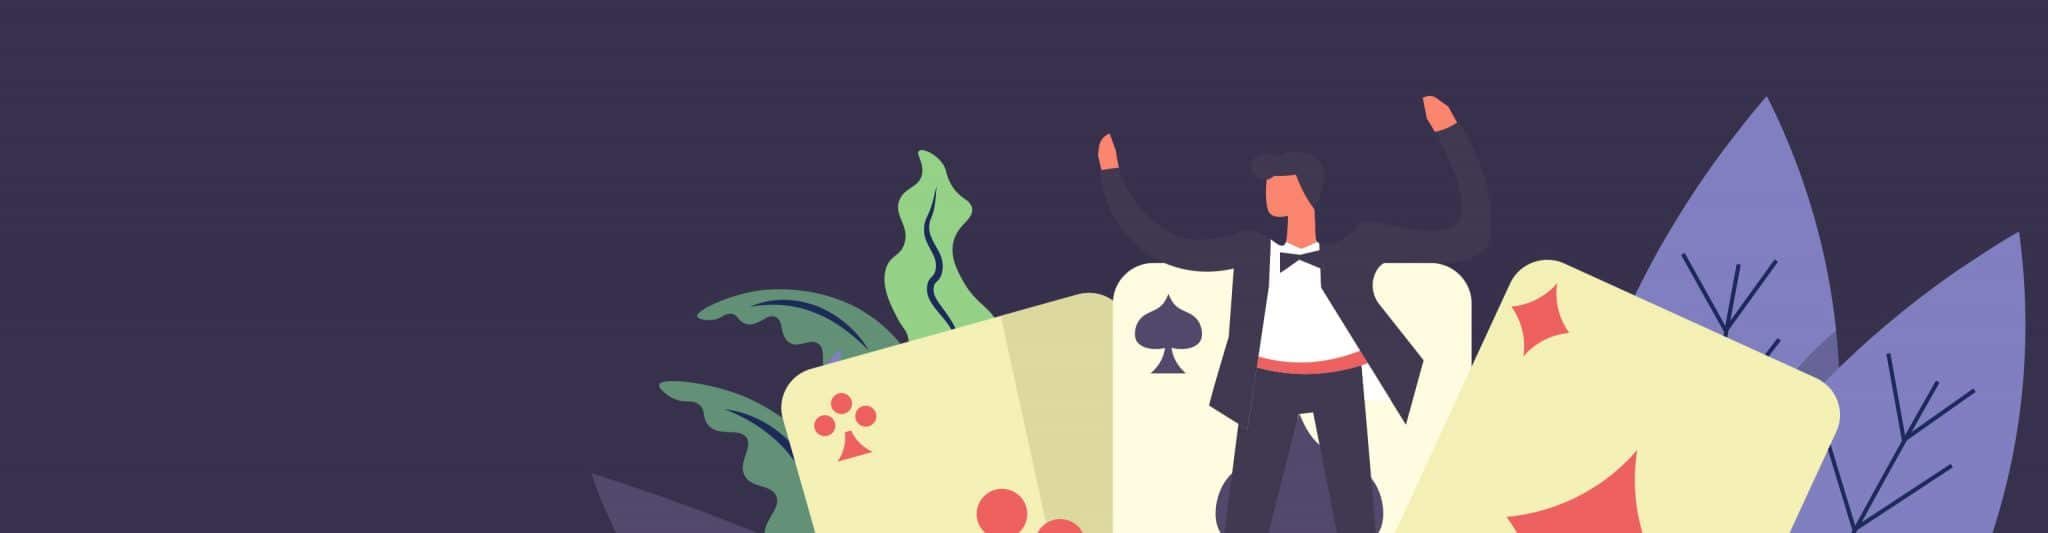 Leaders share 2020 Predictions for iGaming industry Banner 02 - CasinoTop